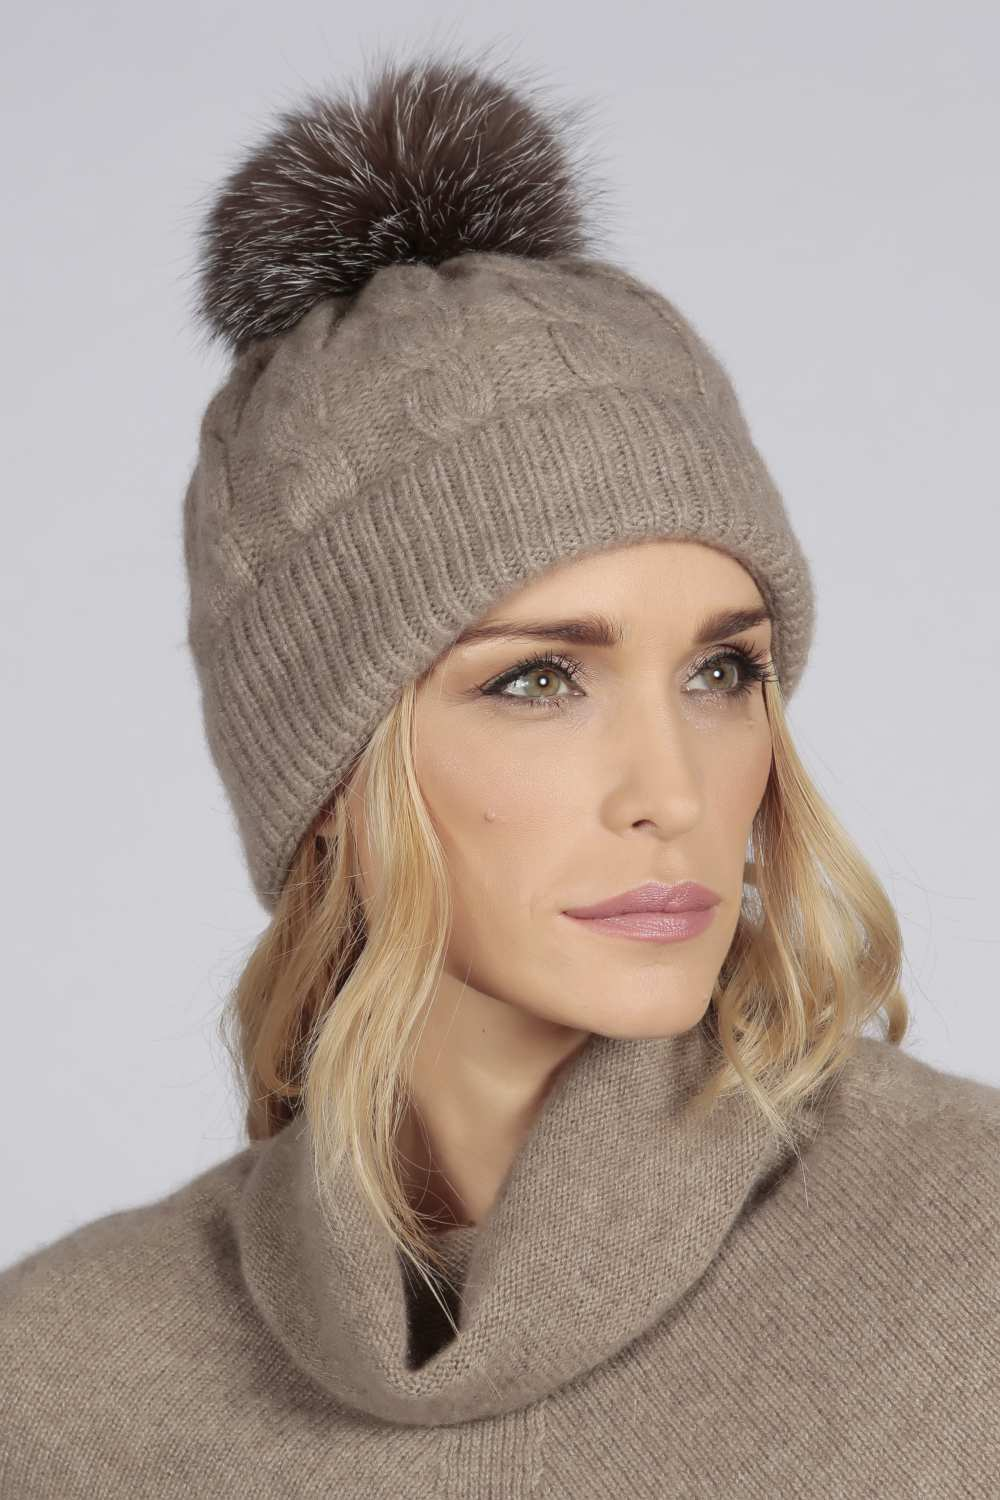 f3a6153a16bed Black Beanie Hat With Brown Pom Pom - Parchment N Lead